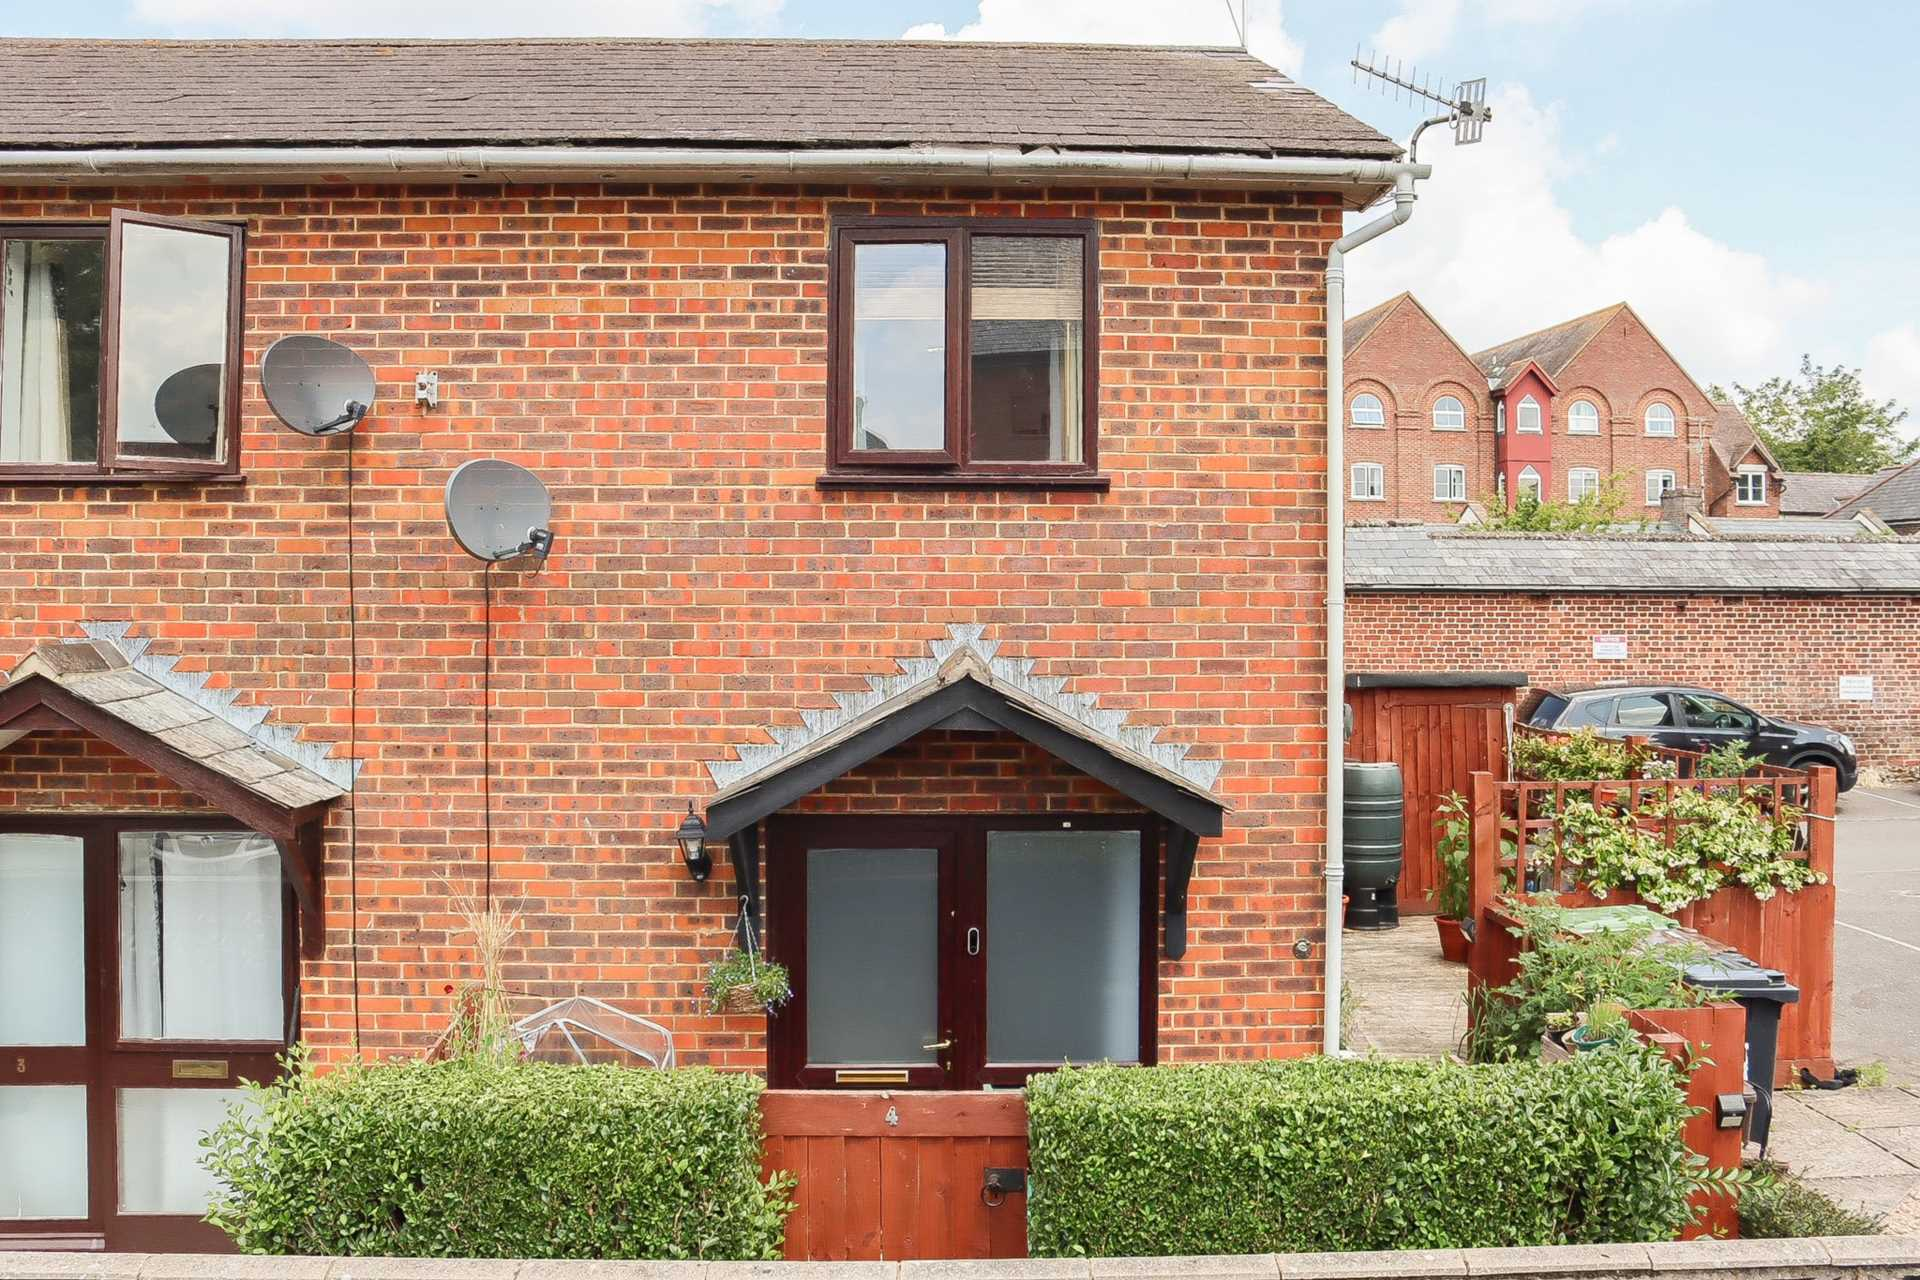 2 bed end of terrace house for sale in The Mews, Shorts Lane, Blandford Forum, Blandford Forum 0